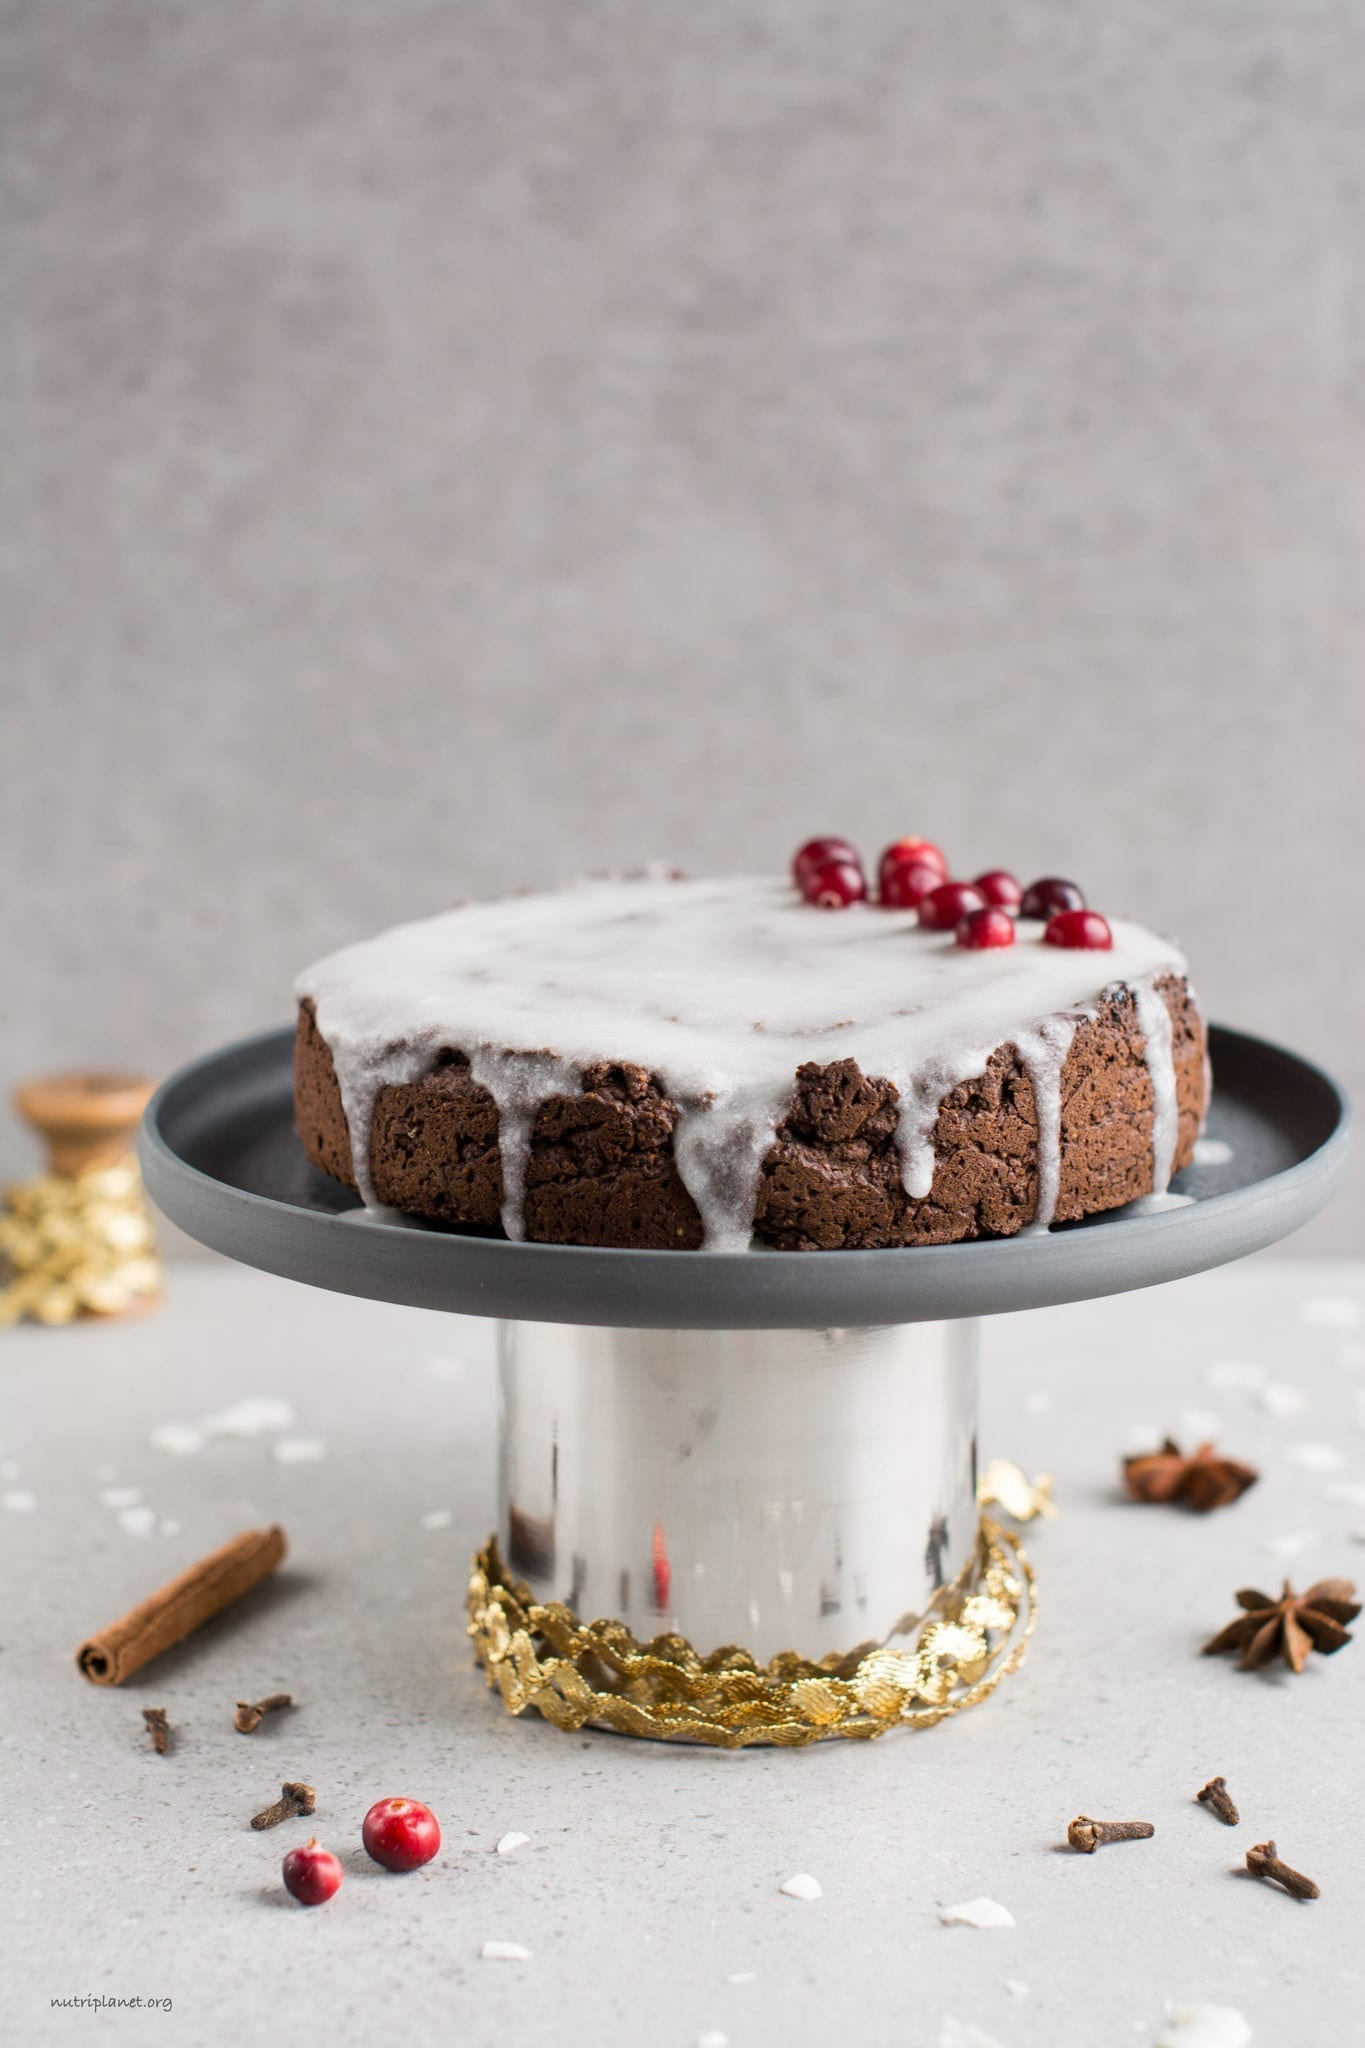 The Best Vegan Gingerbread Cake with Icing [Gluten-Free], Video